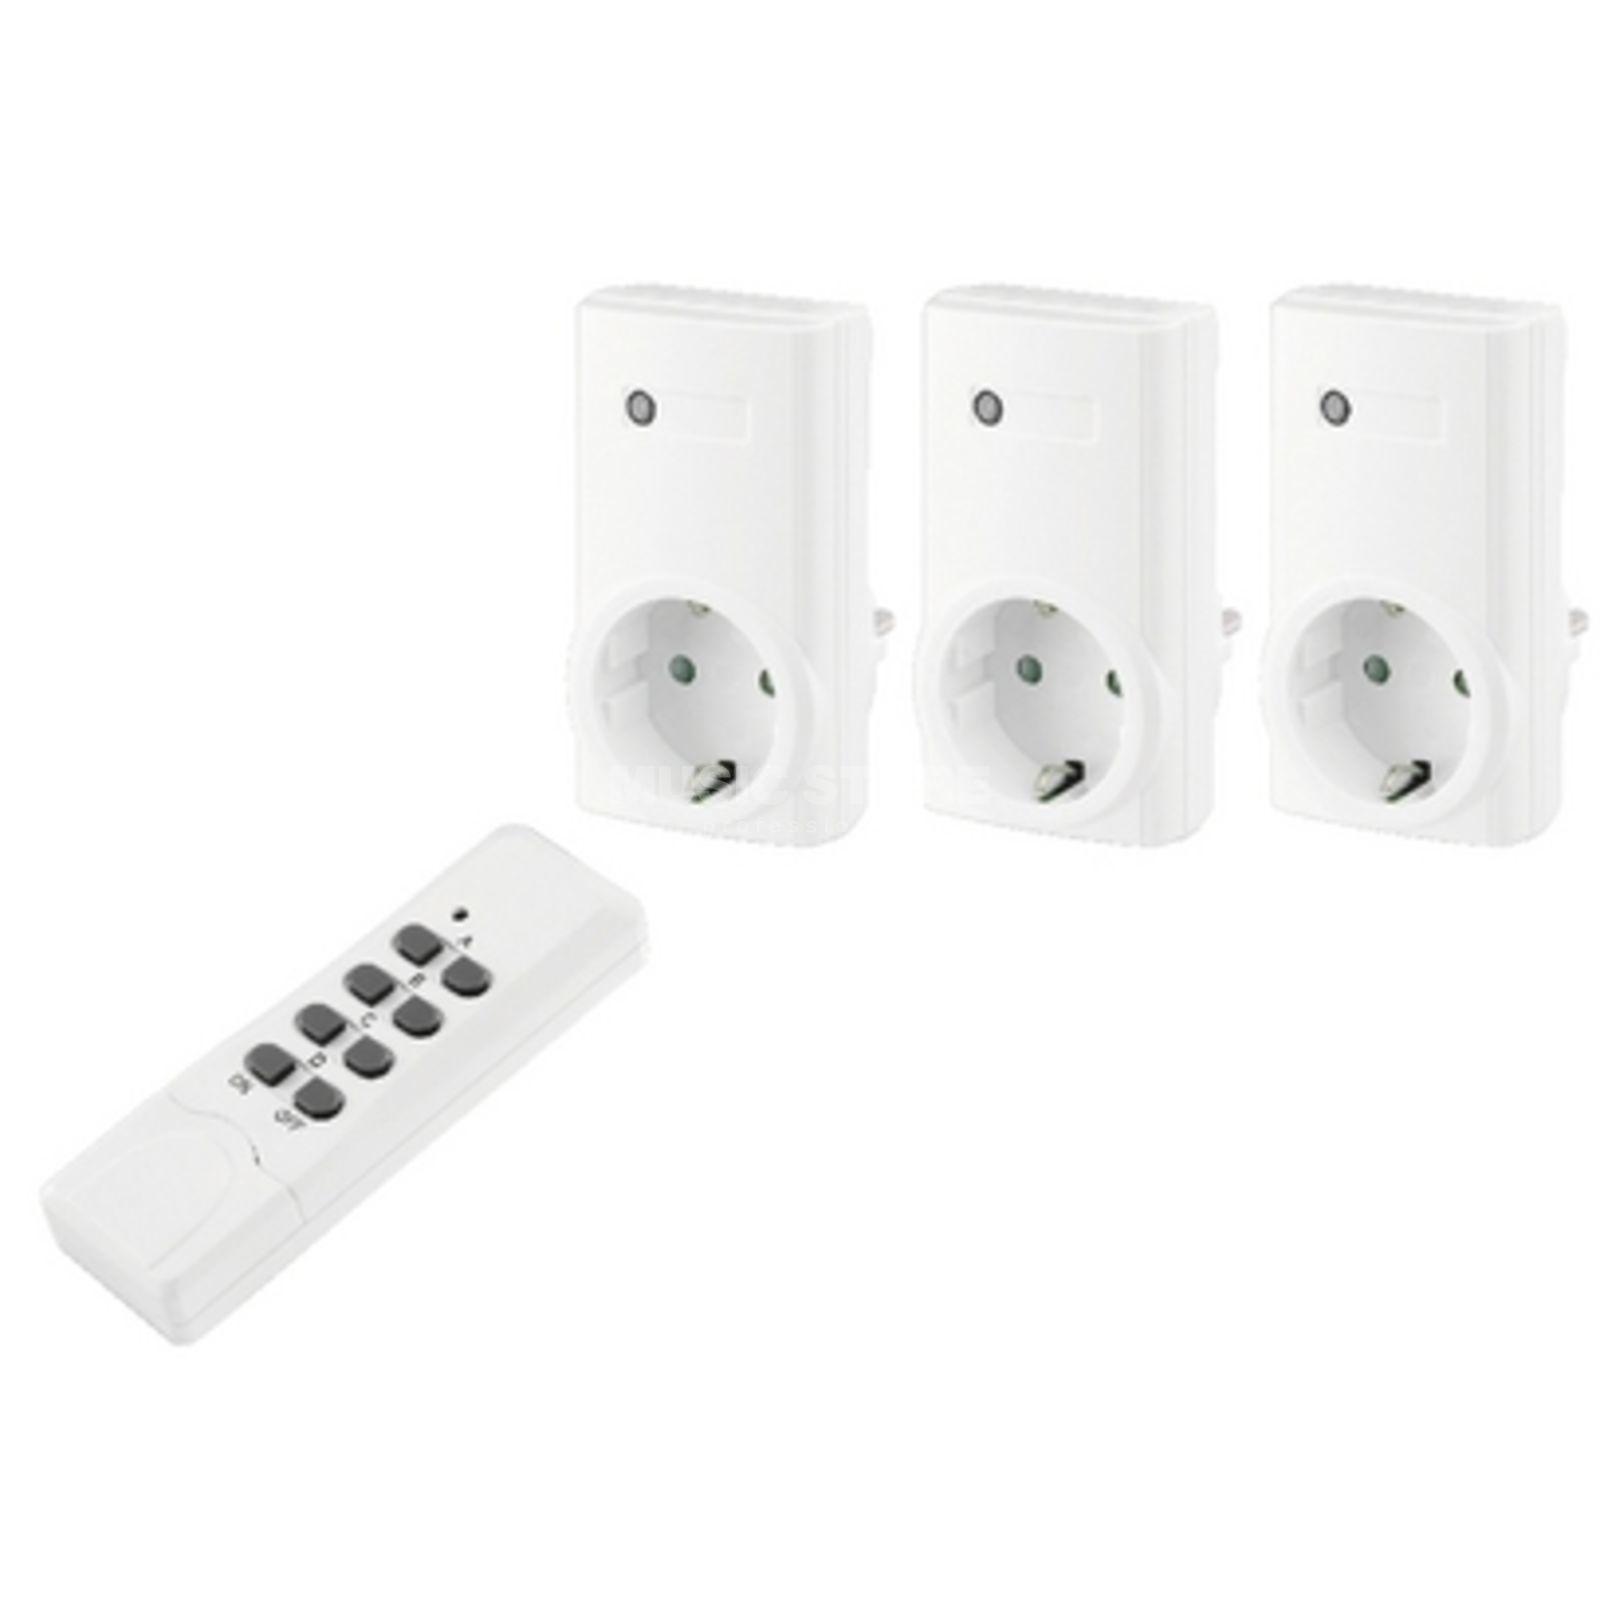 IMG STAGELINE RCS-1000N Remote switch power outlet set Produktbillede